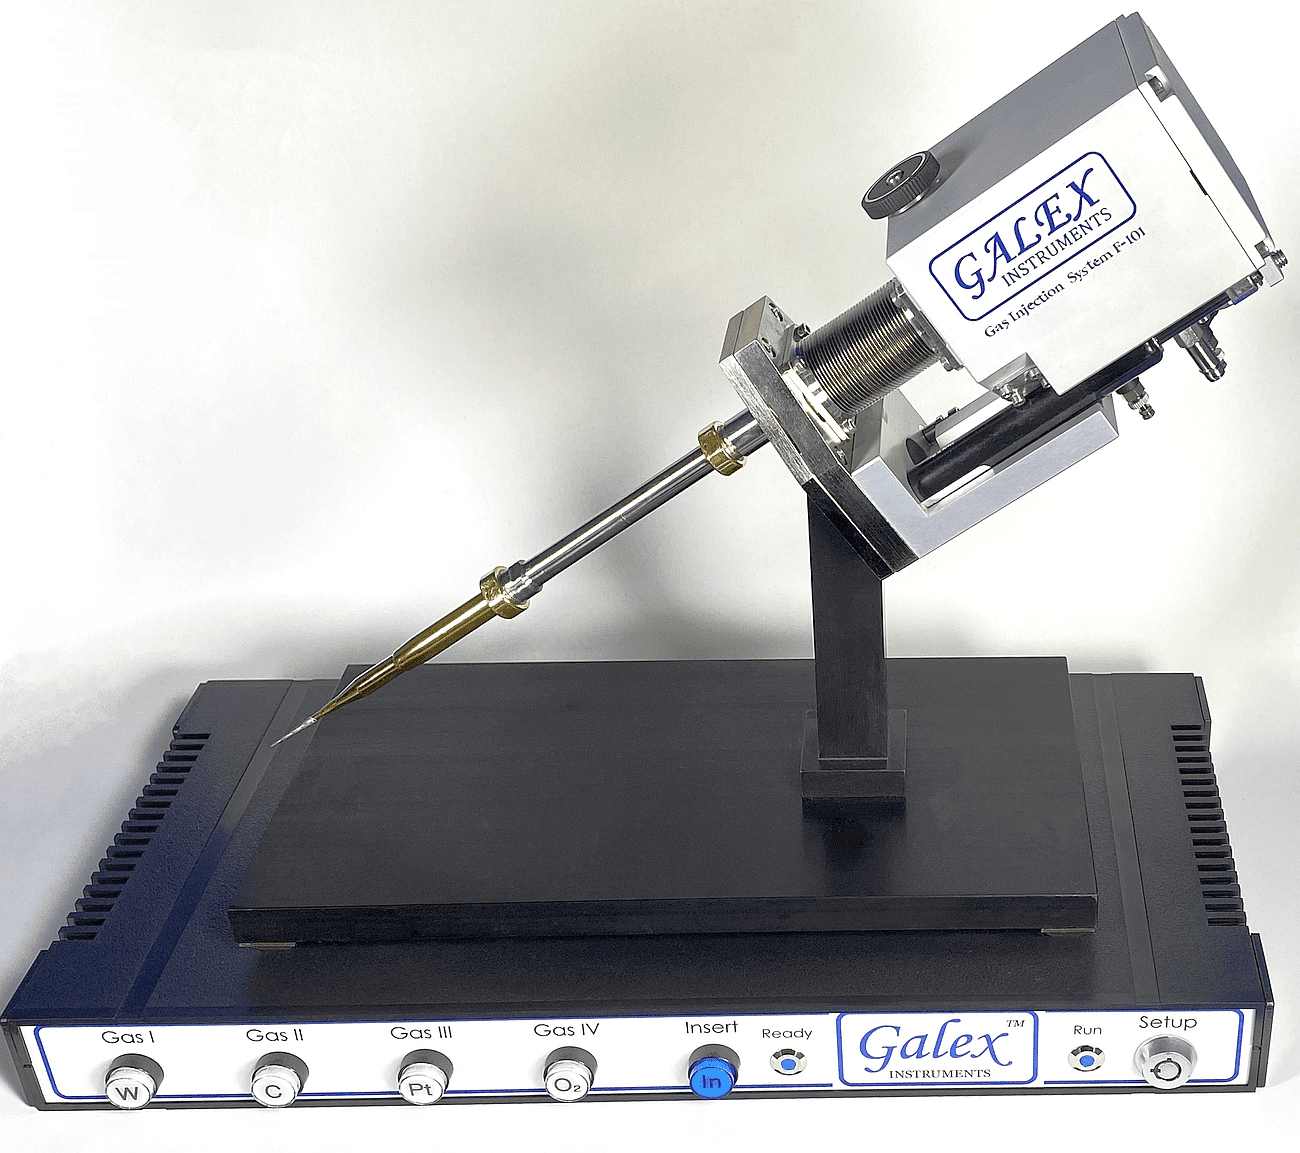 Deposition Gas-Injection System (D-GIS) for delivery Platinum, Carbon, Tungsten, Molybdenum deposition precursors in Focused Ion Beam (FIB) and dual-beam FIB/SEM